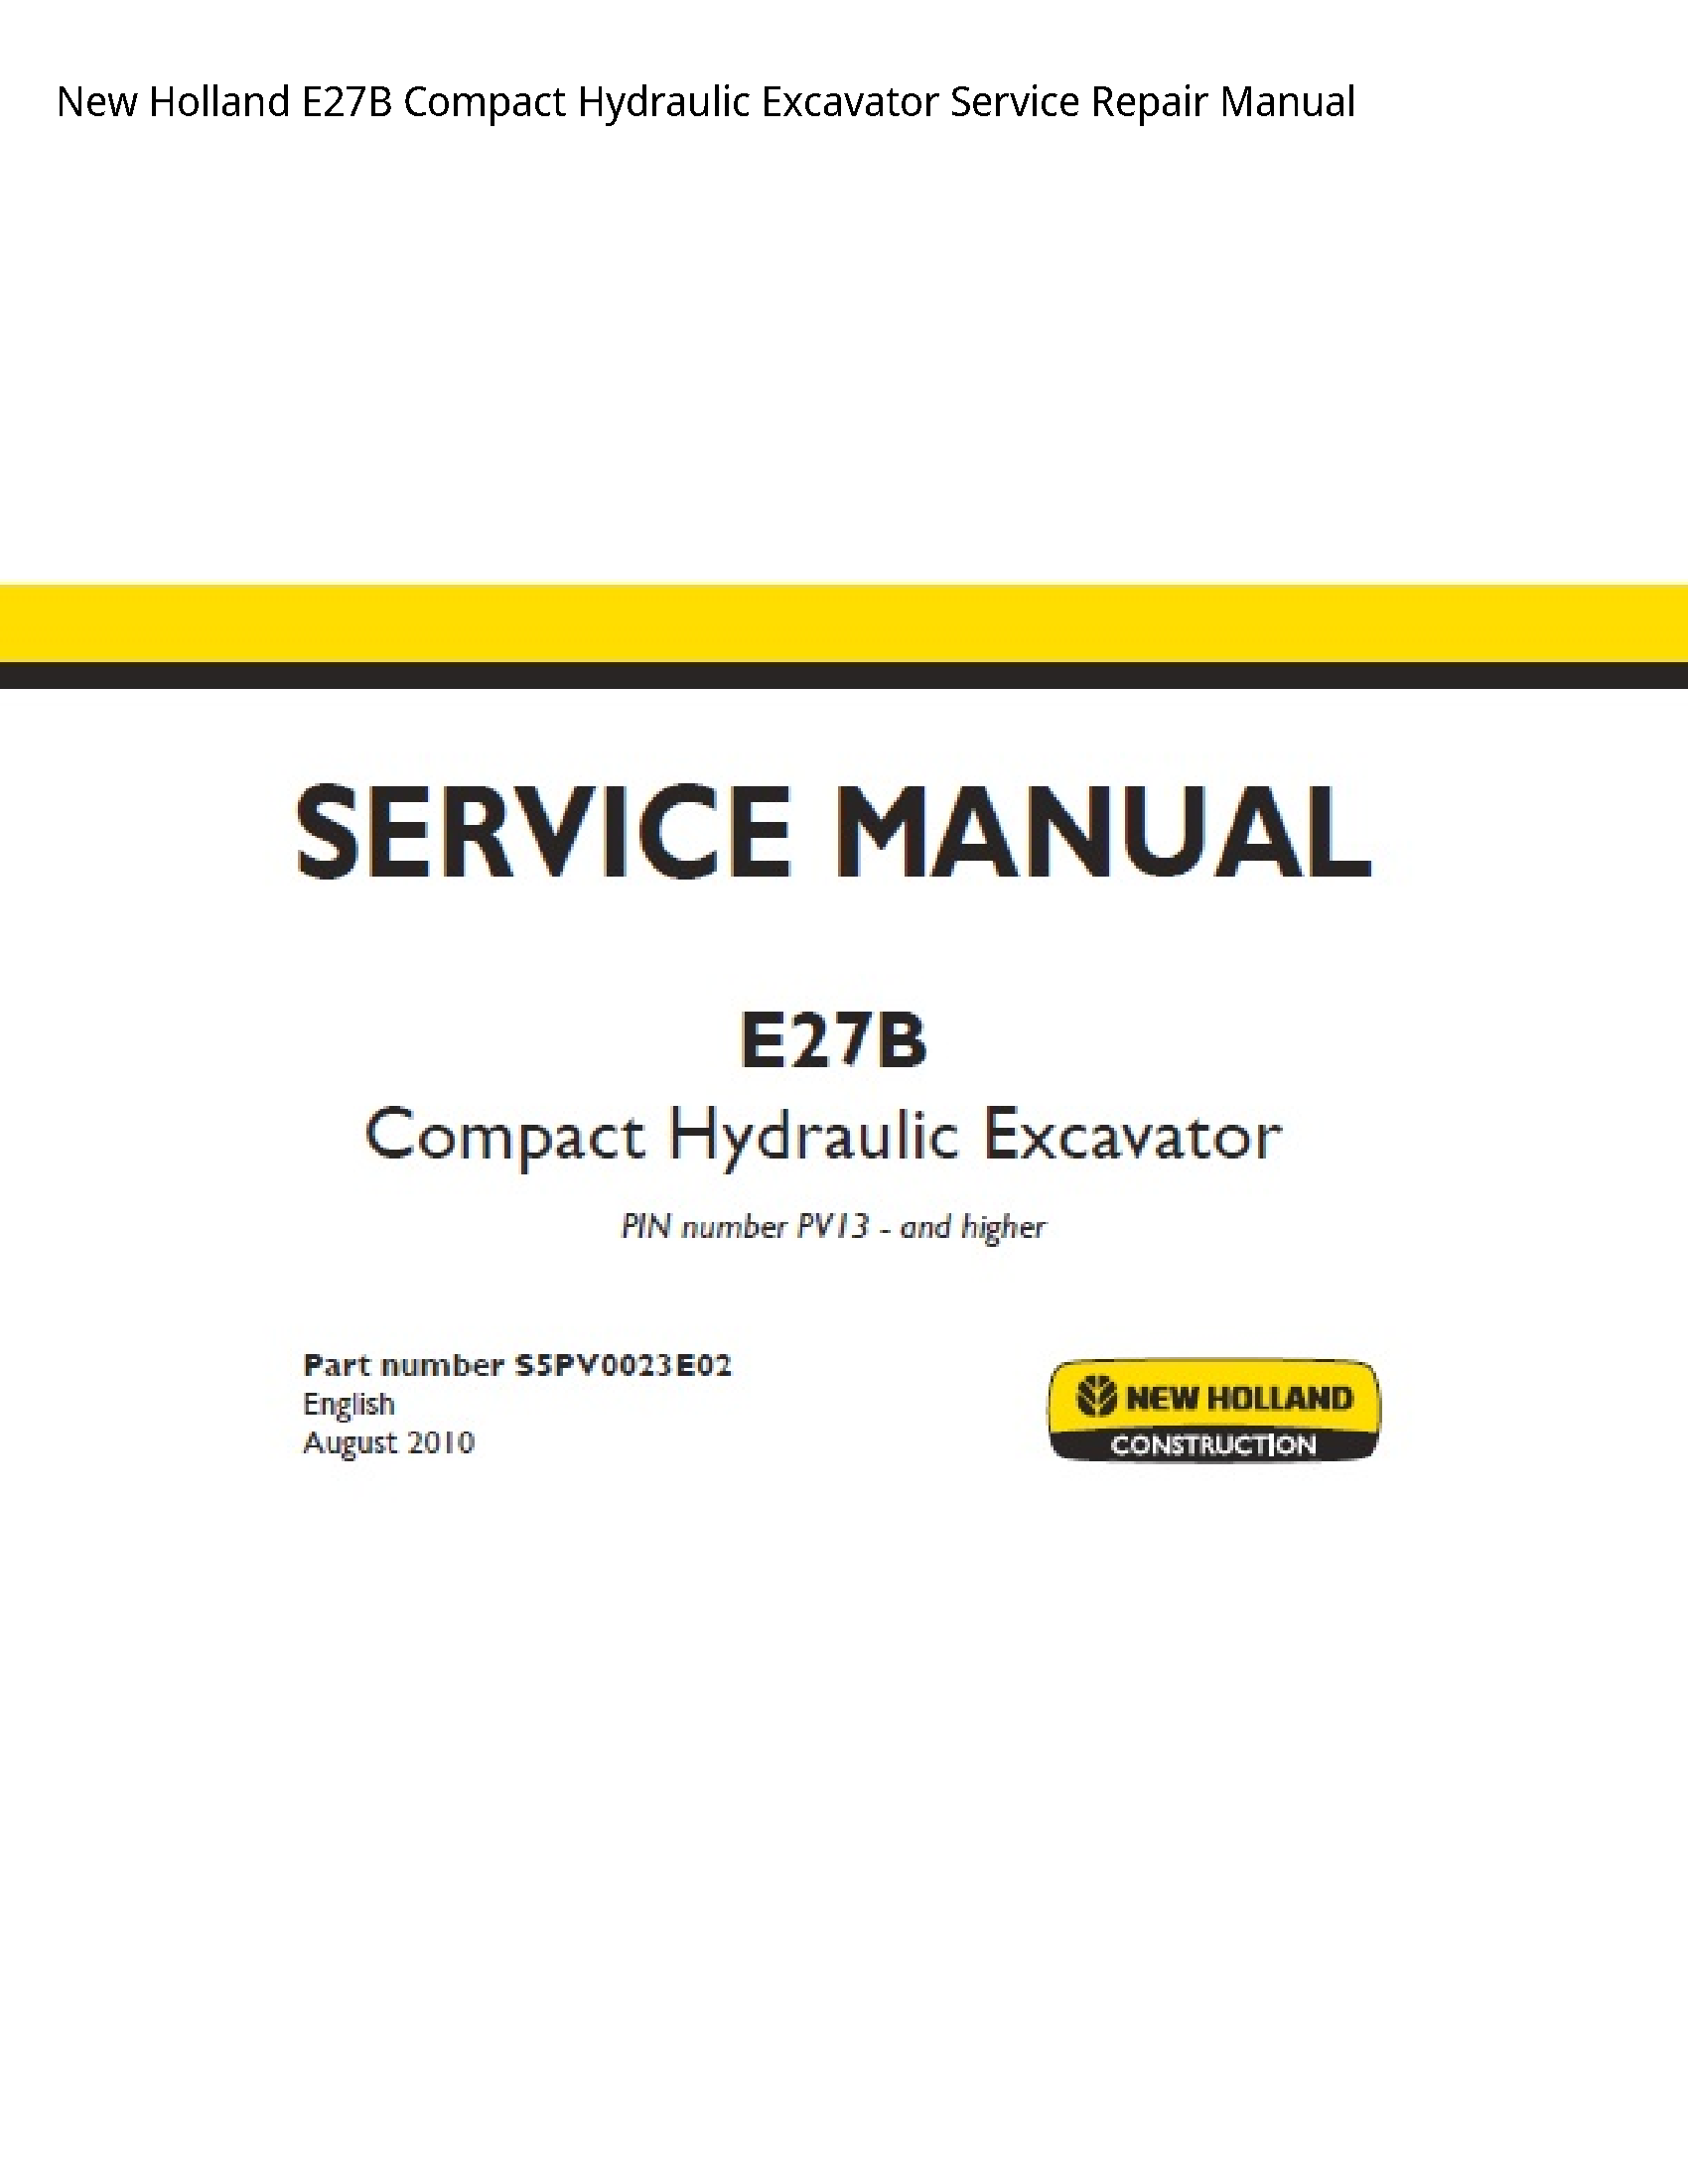 New Holland E27B Compact Hydraulic Excavator manual